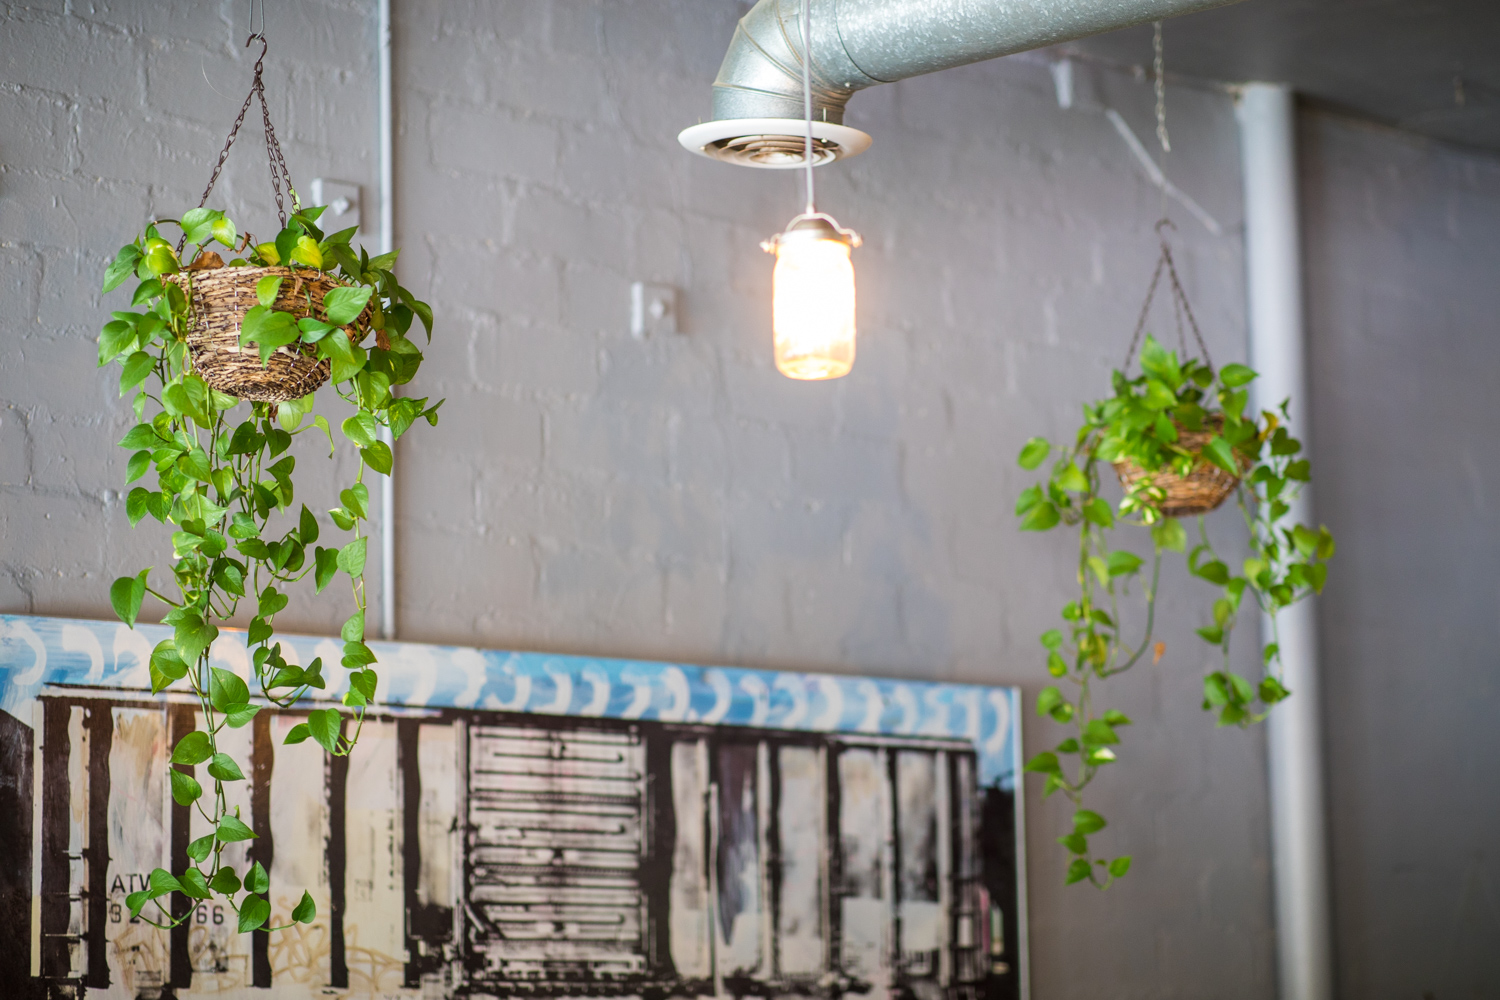 Details of the interior of Banjo Coffee.